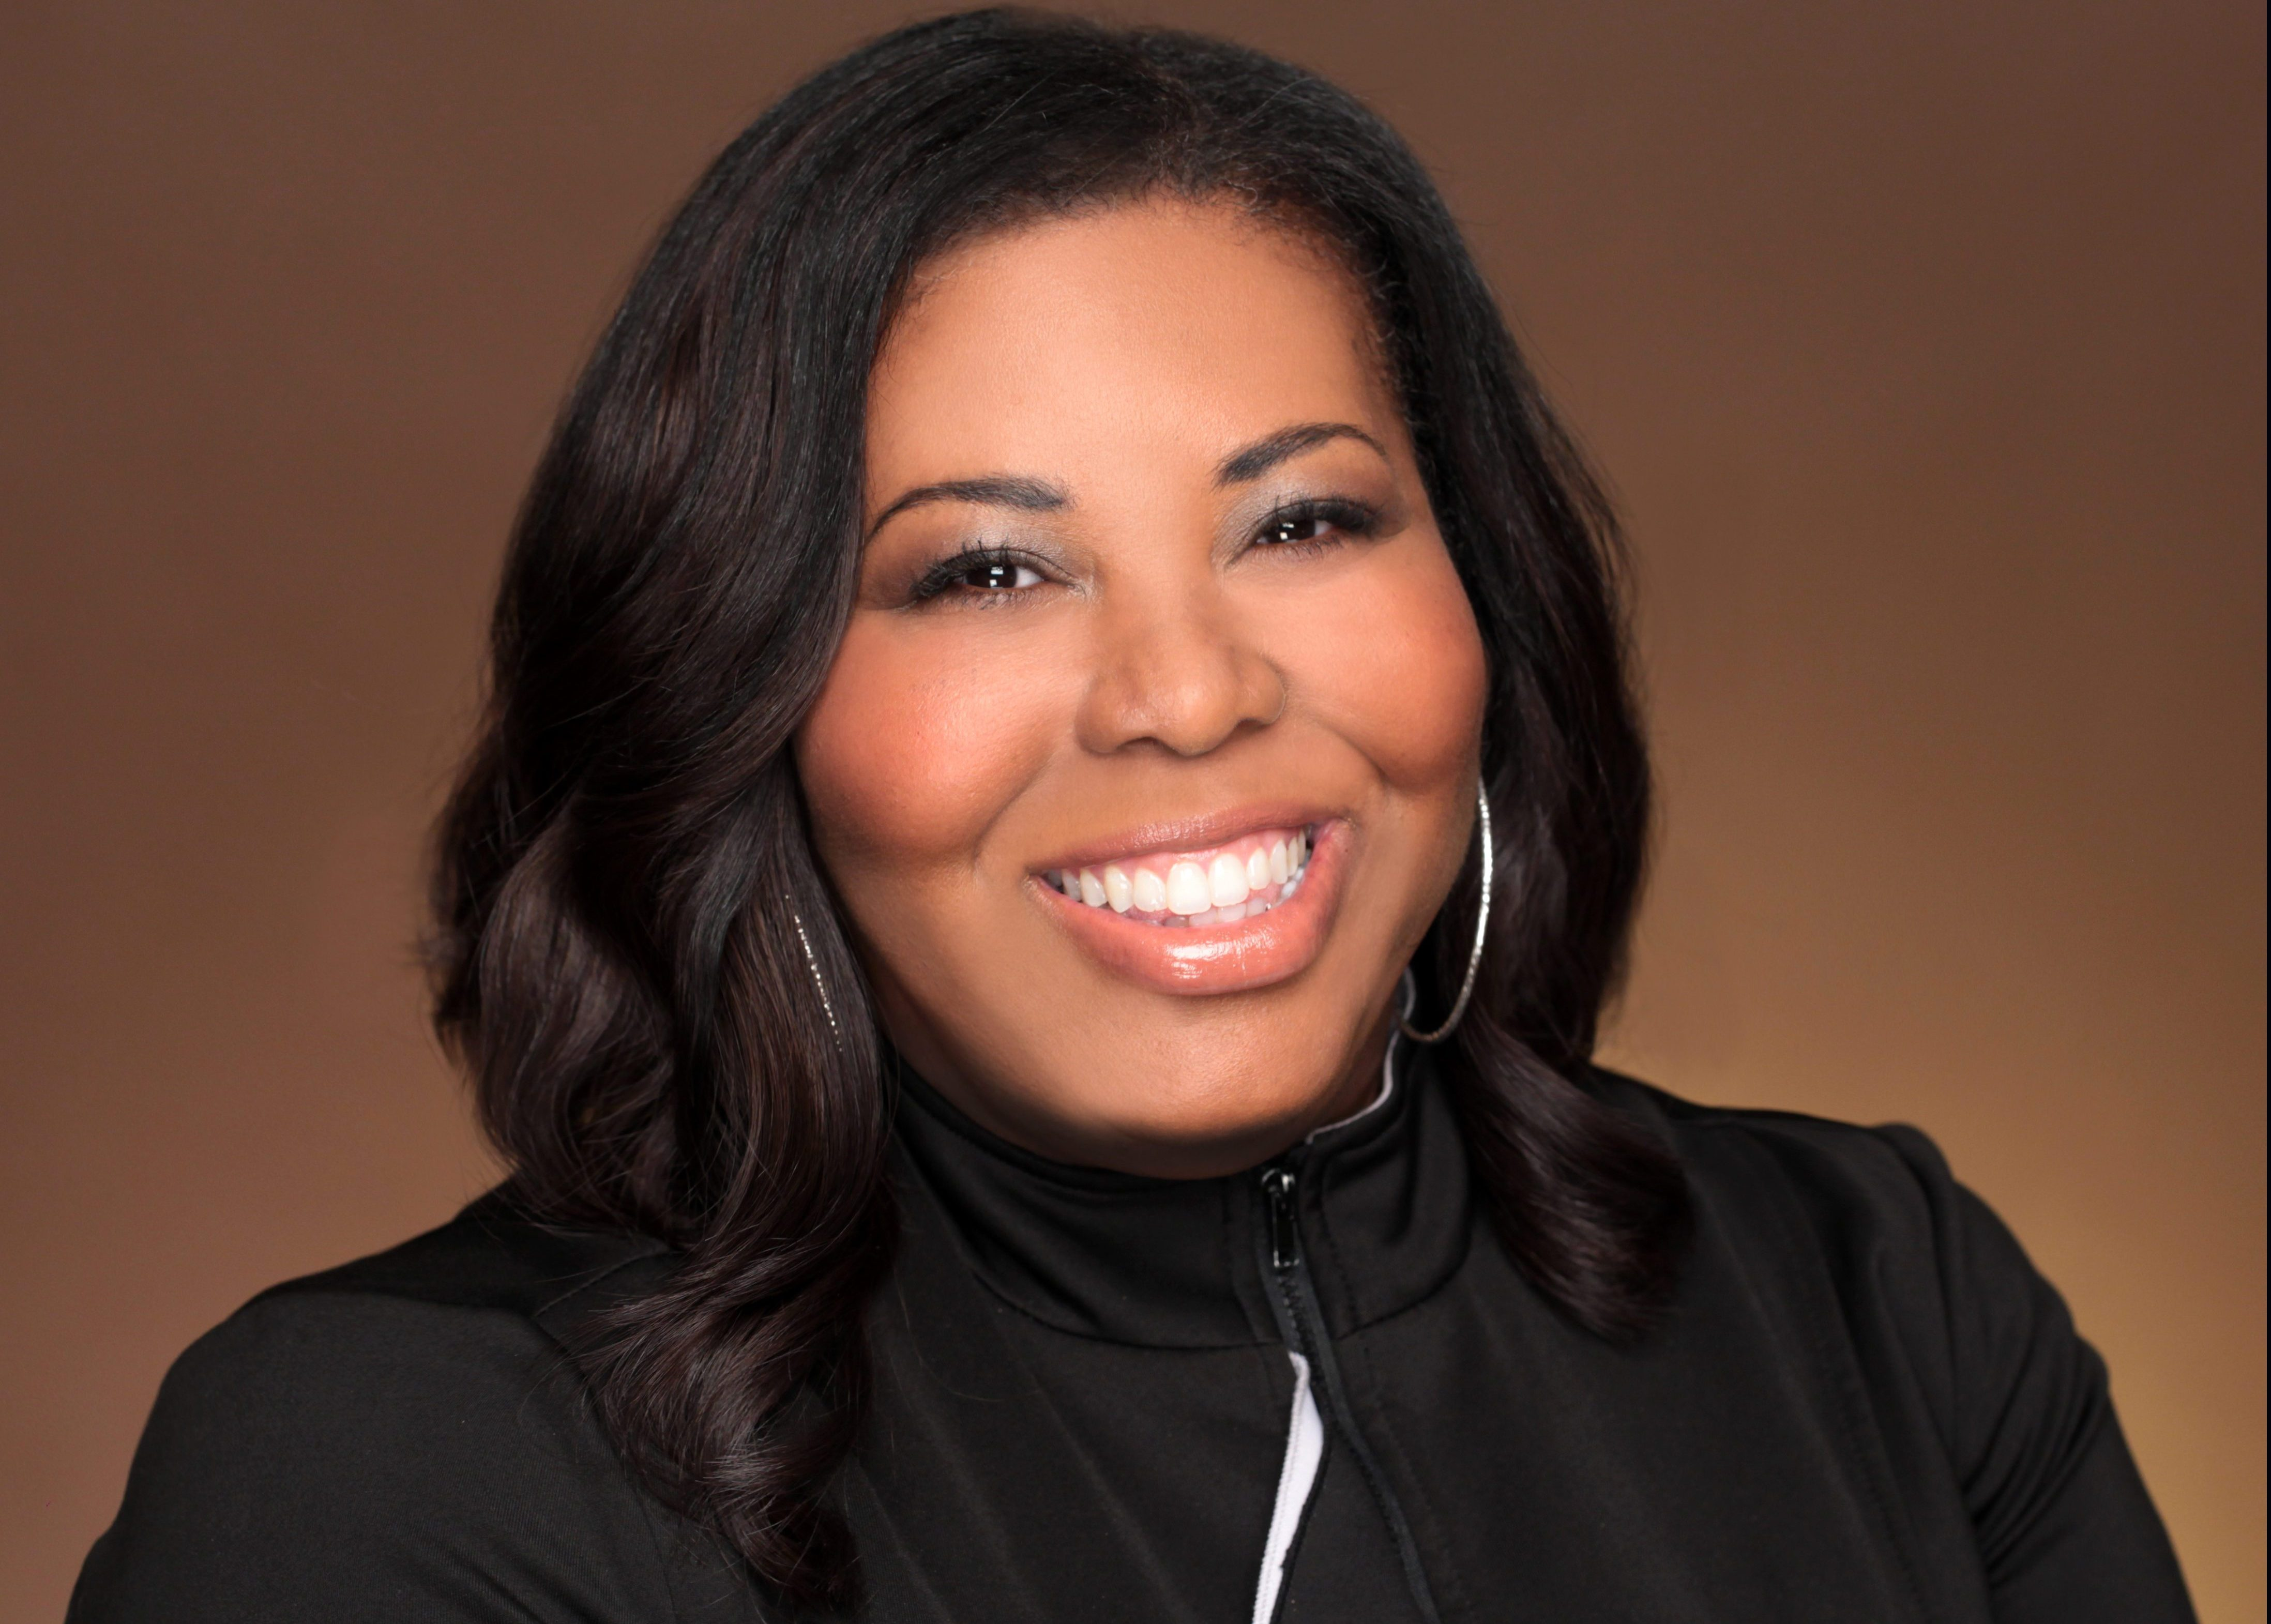 ESPN VP KIMBERLY WILSON'S UNCONVENTIONAL PROFESSIONAL JOURNEY AND SUCCESS PAVES WAY TOWARDS  PAYING IT FORWARD